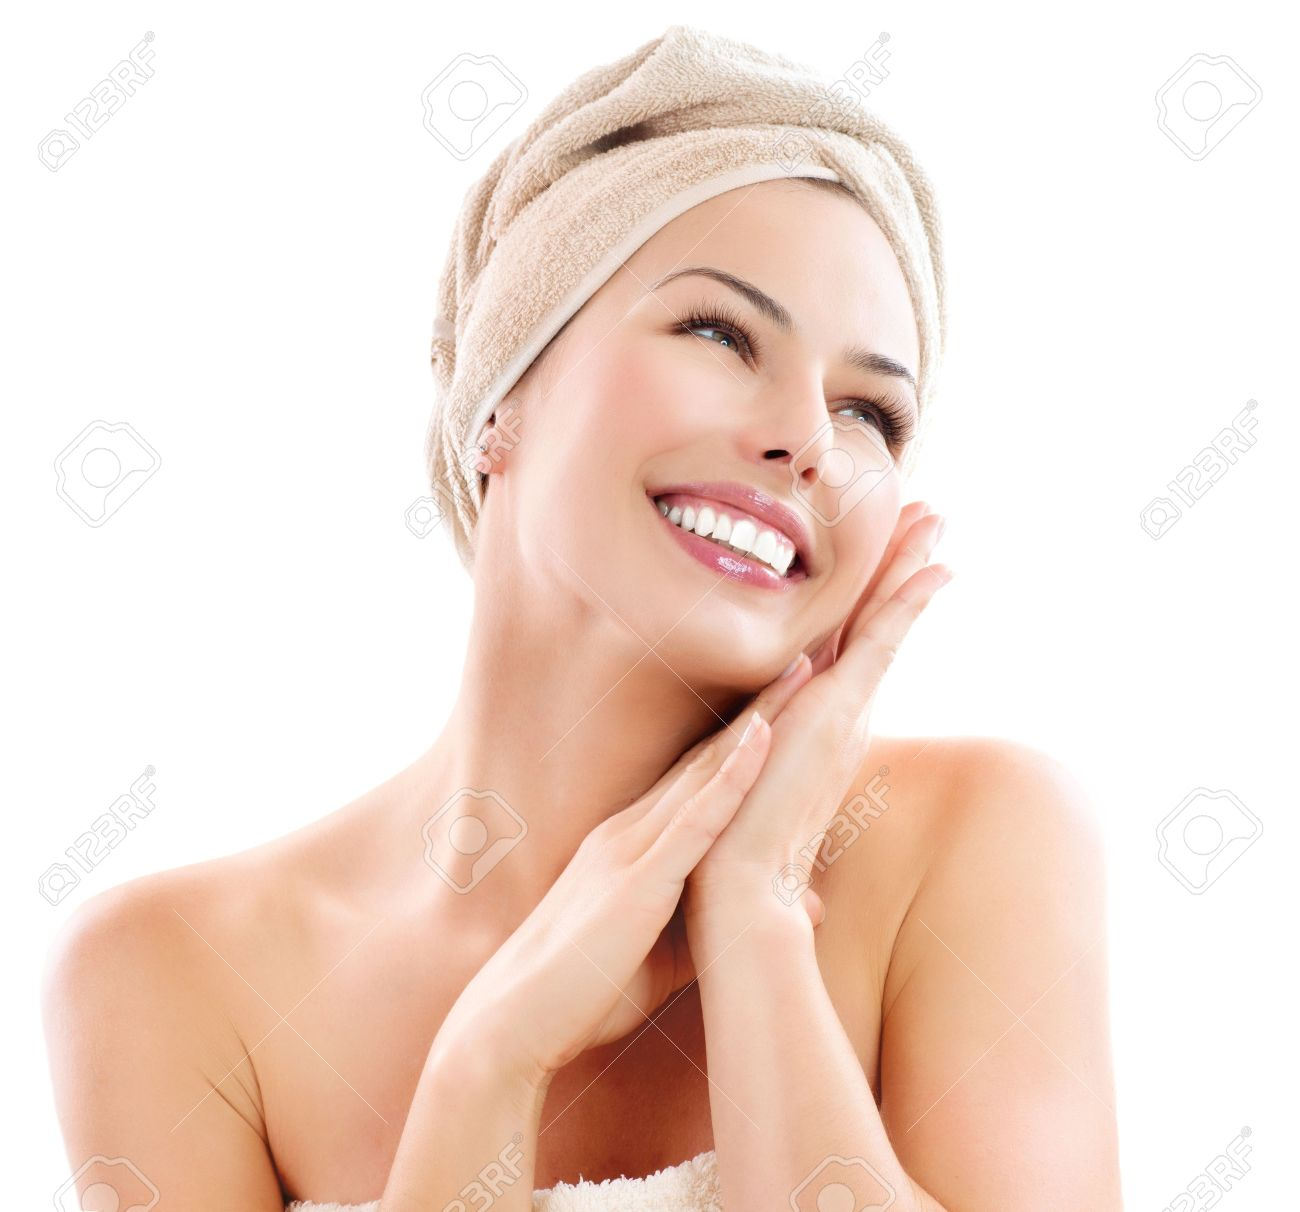 Beautiful Girl After Bath Touching Her Face Skincare Stock Photo Picture And Royalty Free Image Image 18693533